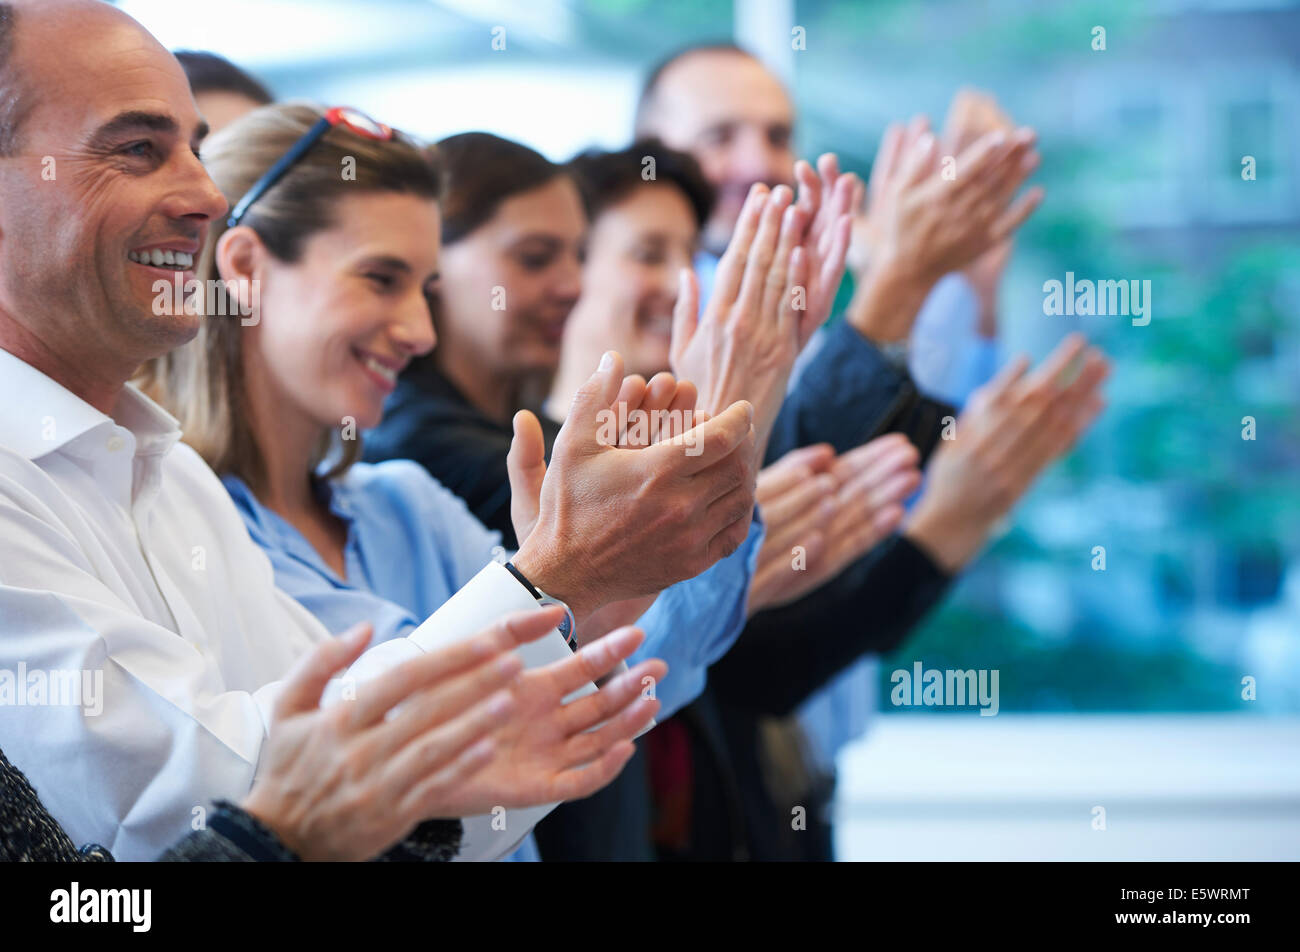 Groupe de personnes applaudissant Photo Stock